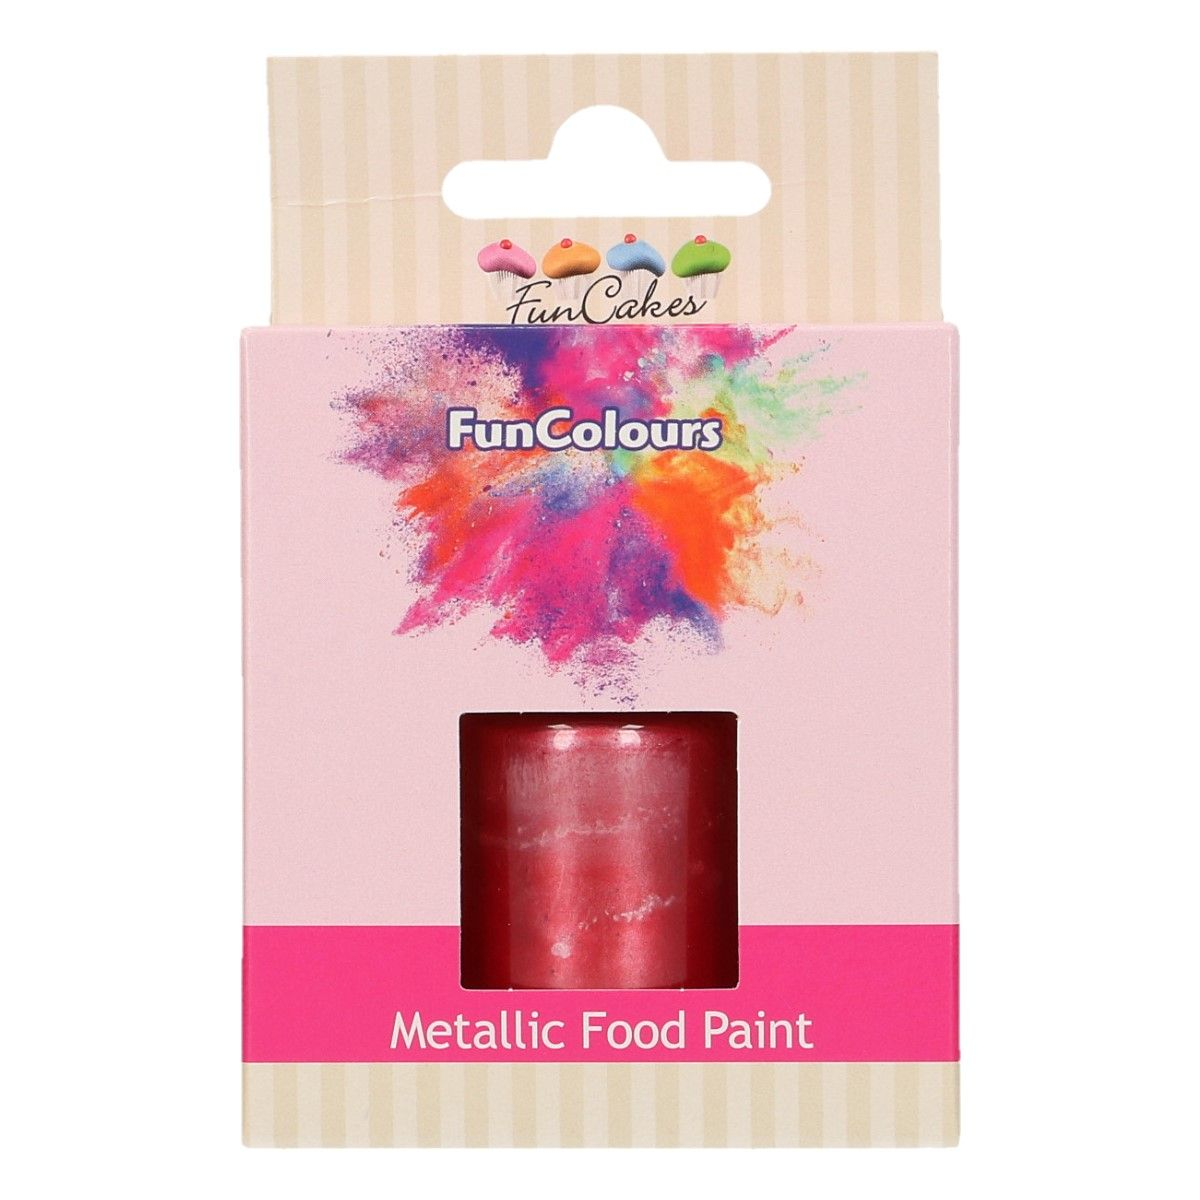 FunCakes Metallic Food Paint Cerise 30ml